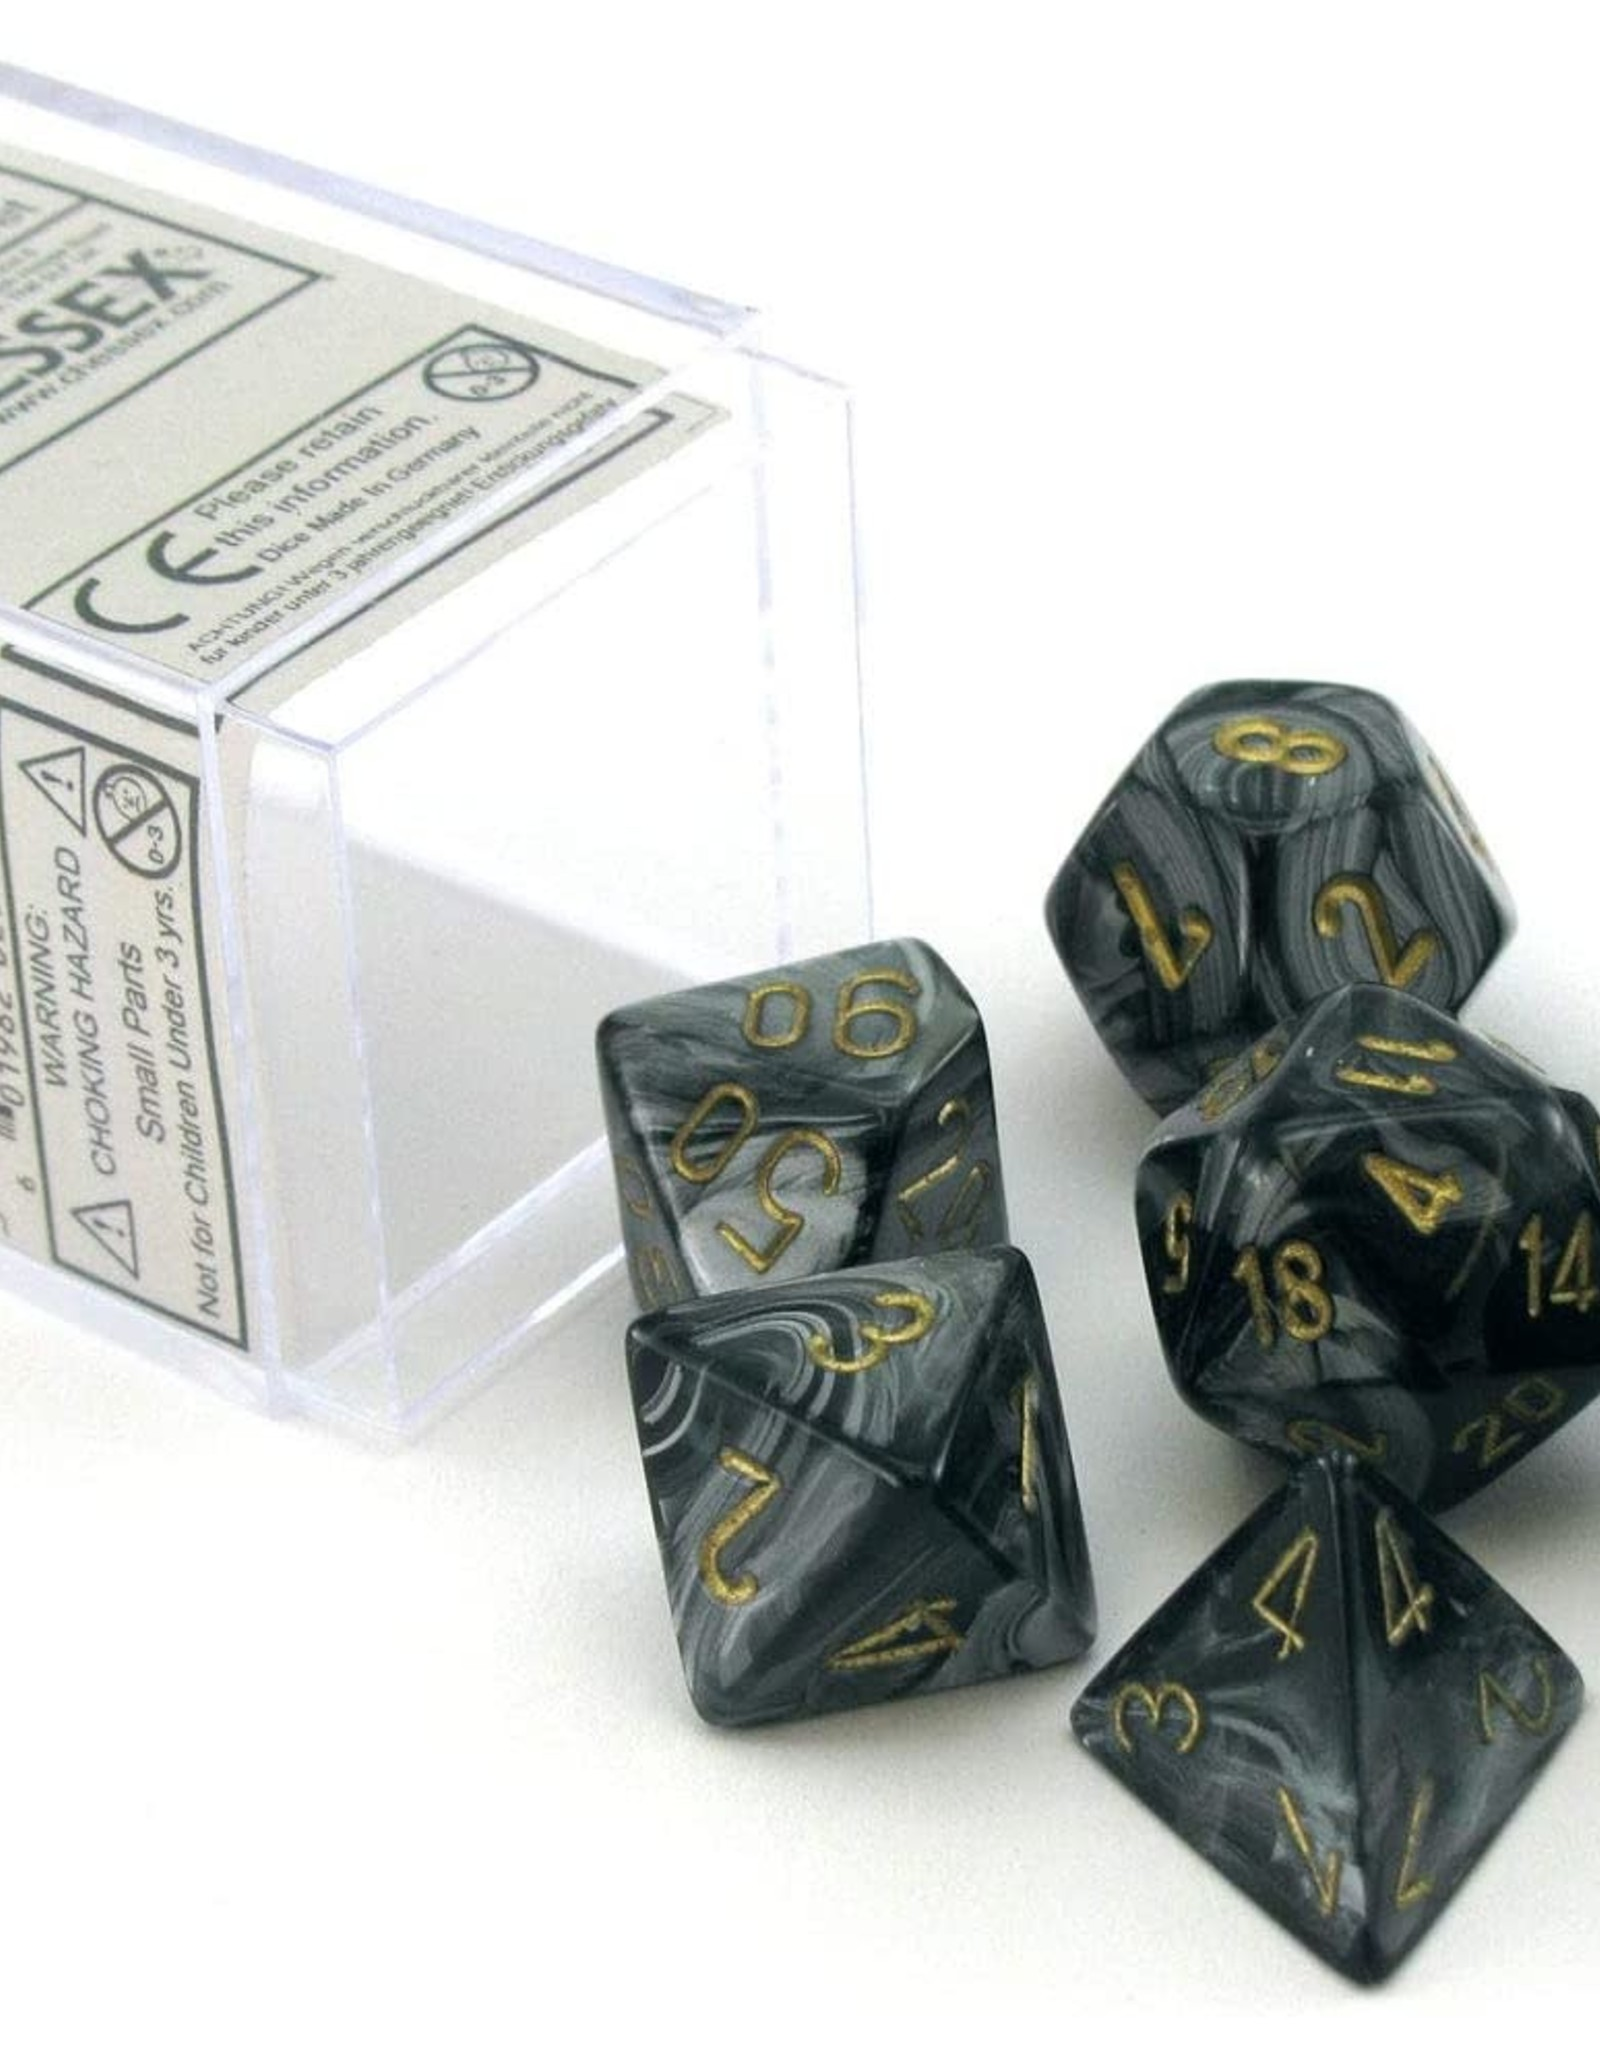 Chessex Chessex Dice: Polyhedral 7-Die Lustrous Dice Set - Black w/gold CHX-27498